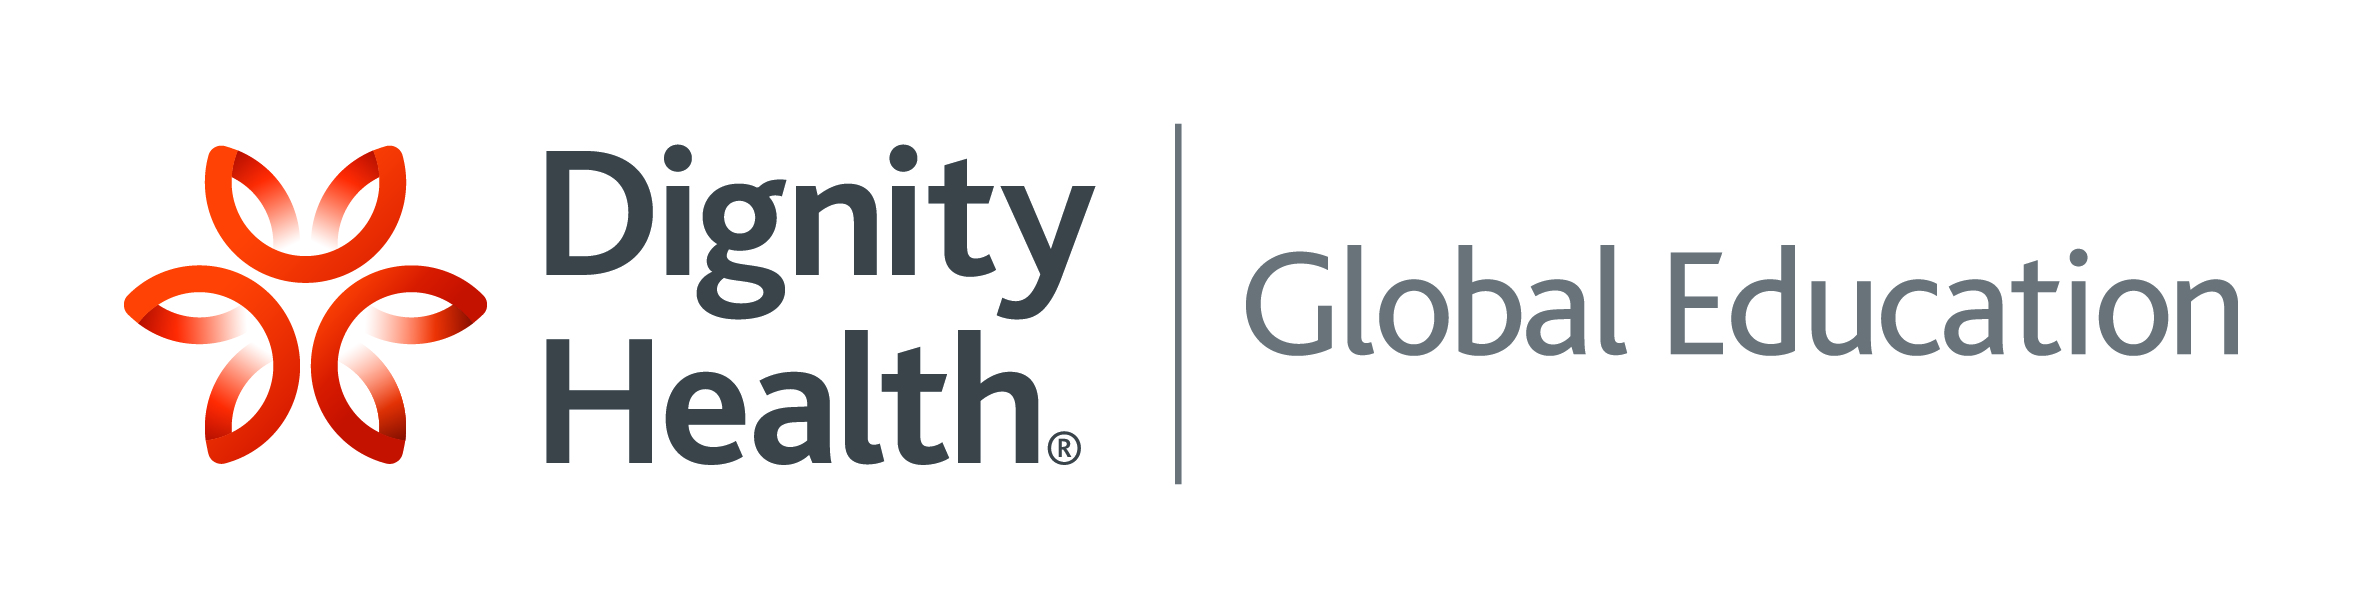 Dignity Health Global Education (DHGE) header image